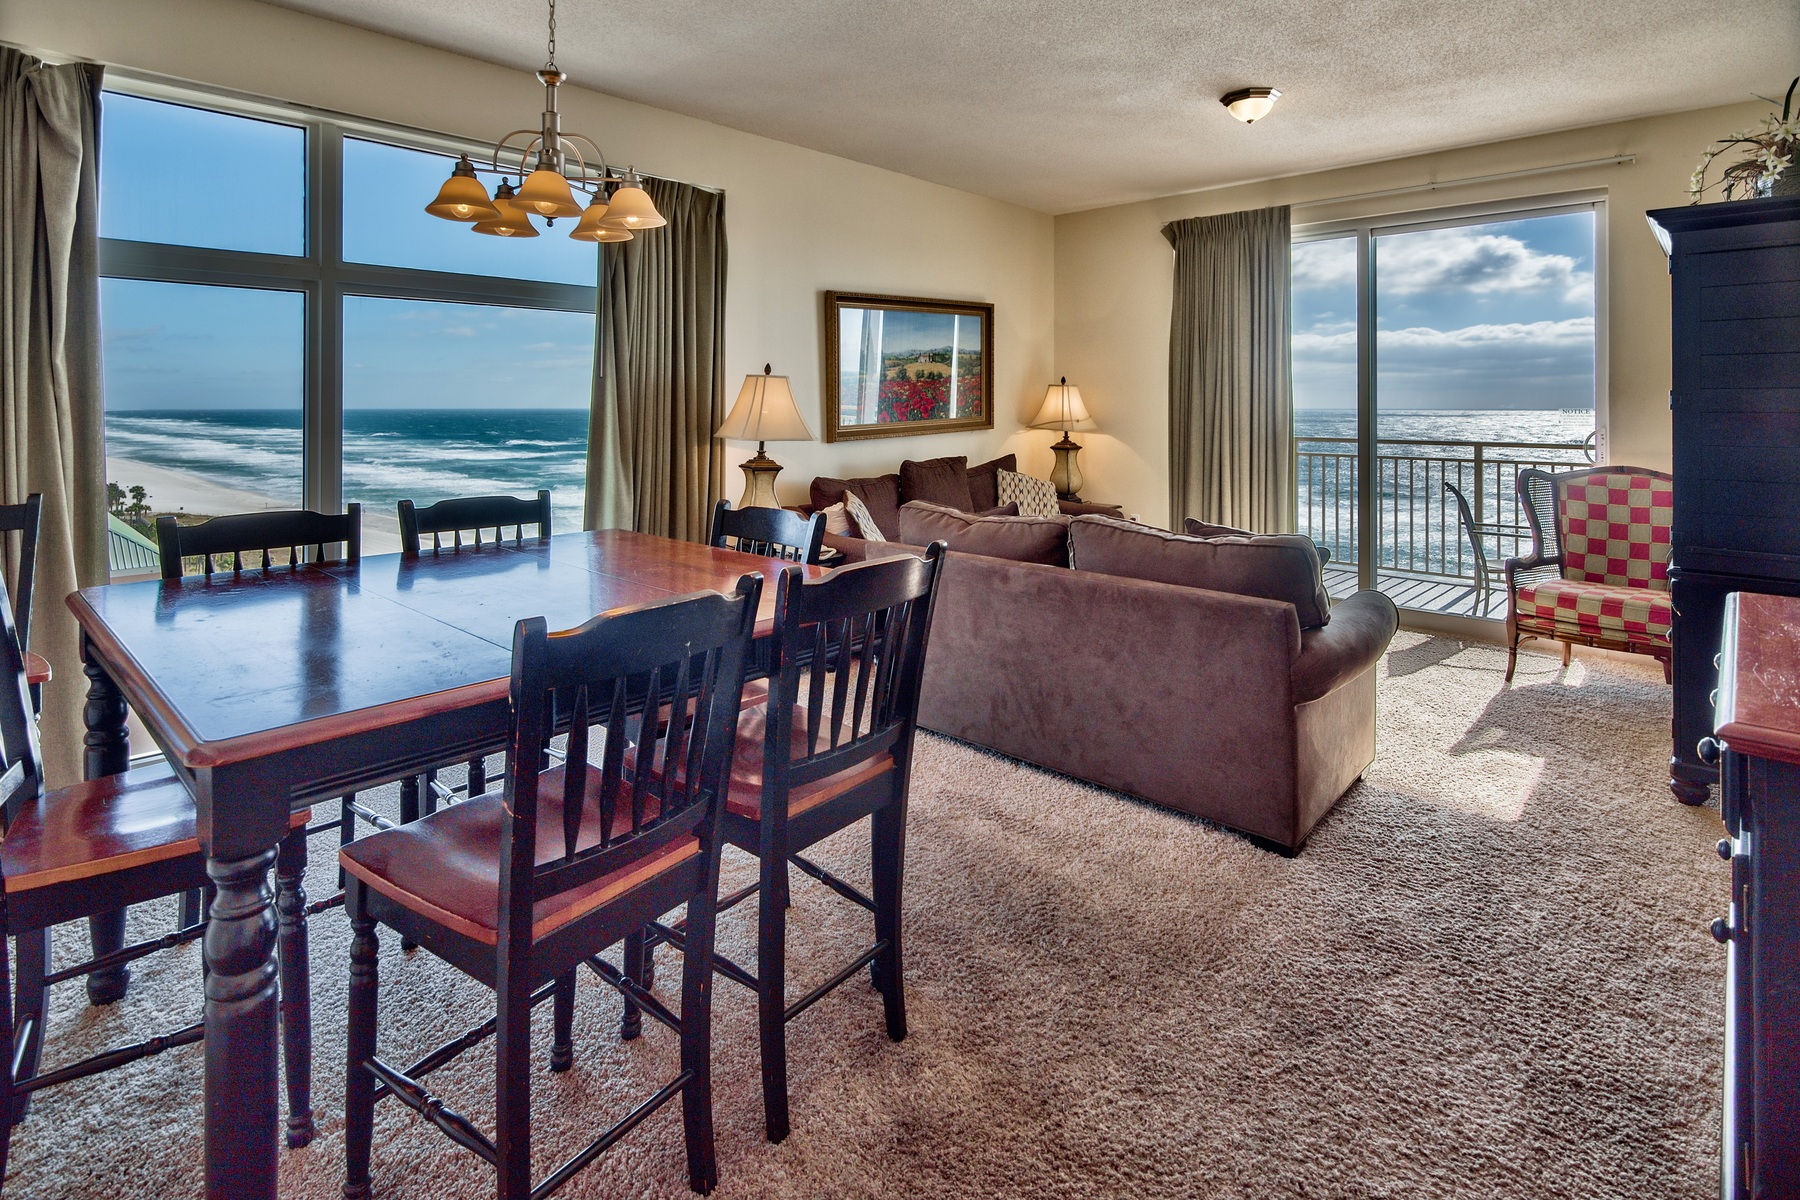 Copropriété pour l Vente à OVERSIZED 6TH FLOOR BALCONY WITH PANORAMIC GULF VIEWS 12011 Front Beach Road 601 Panama City Beach, Florida, 32408 États-Unis